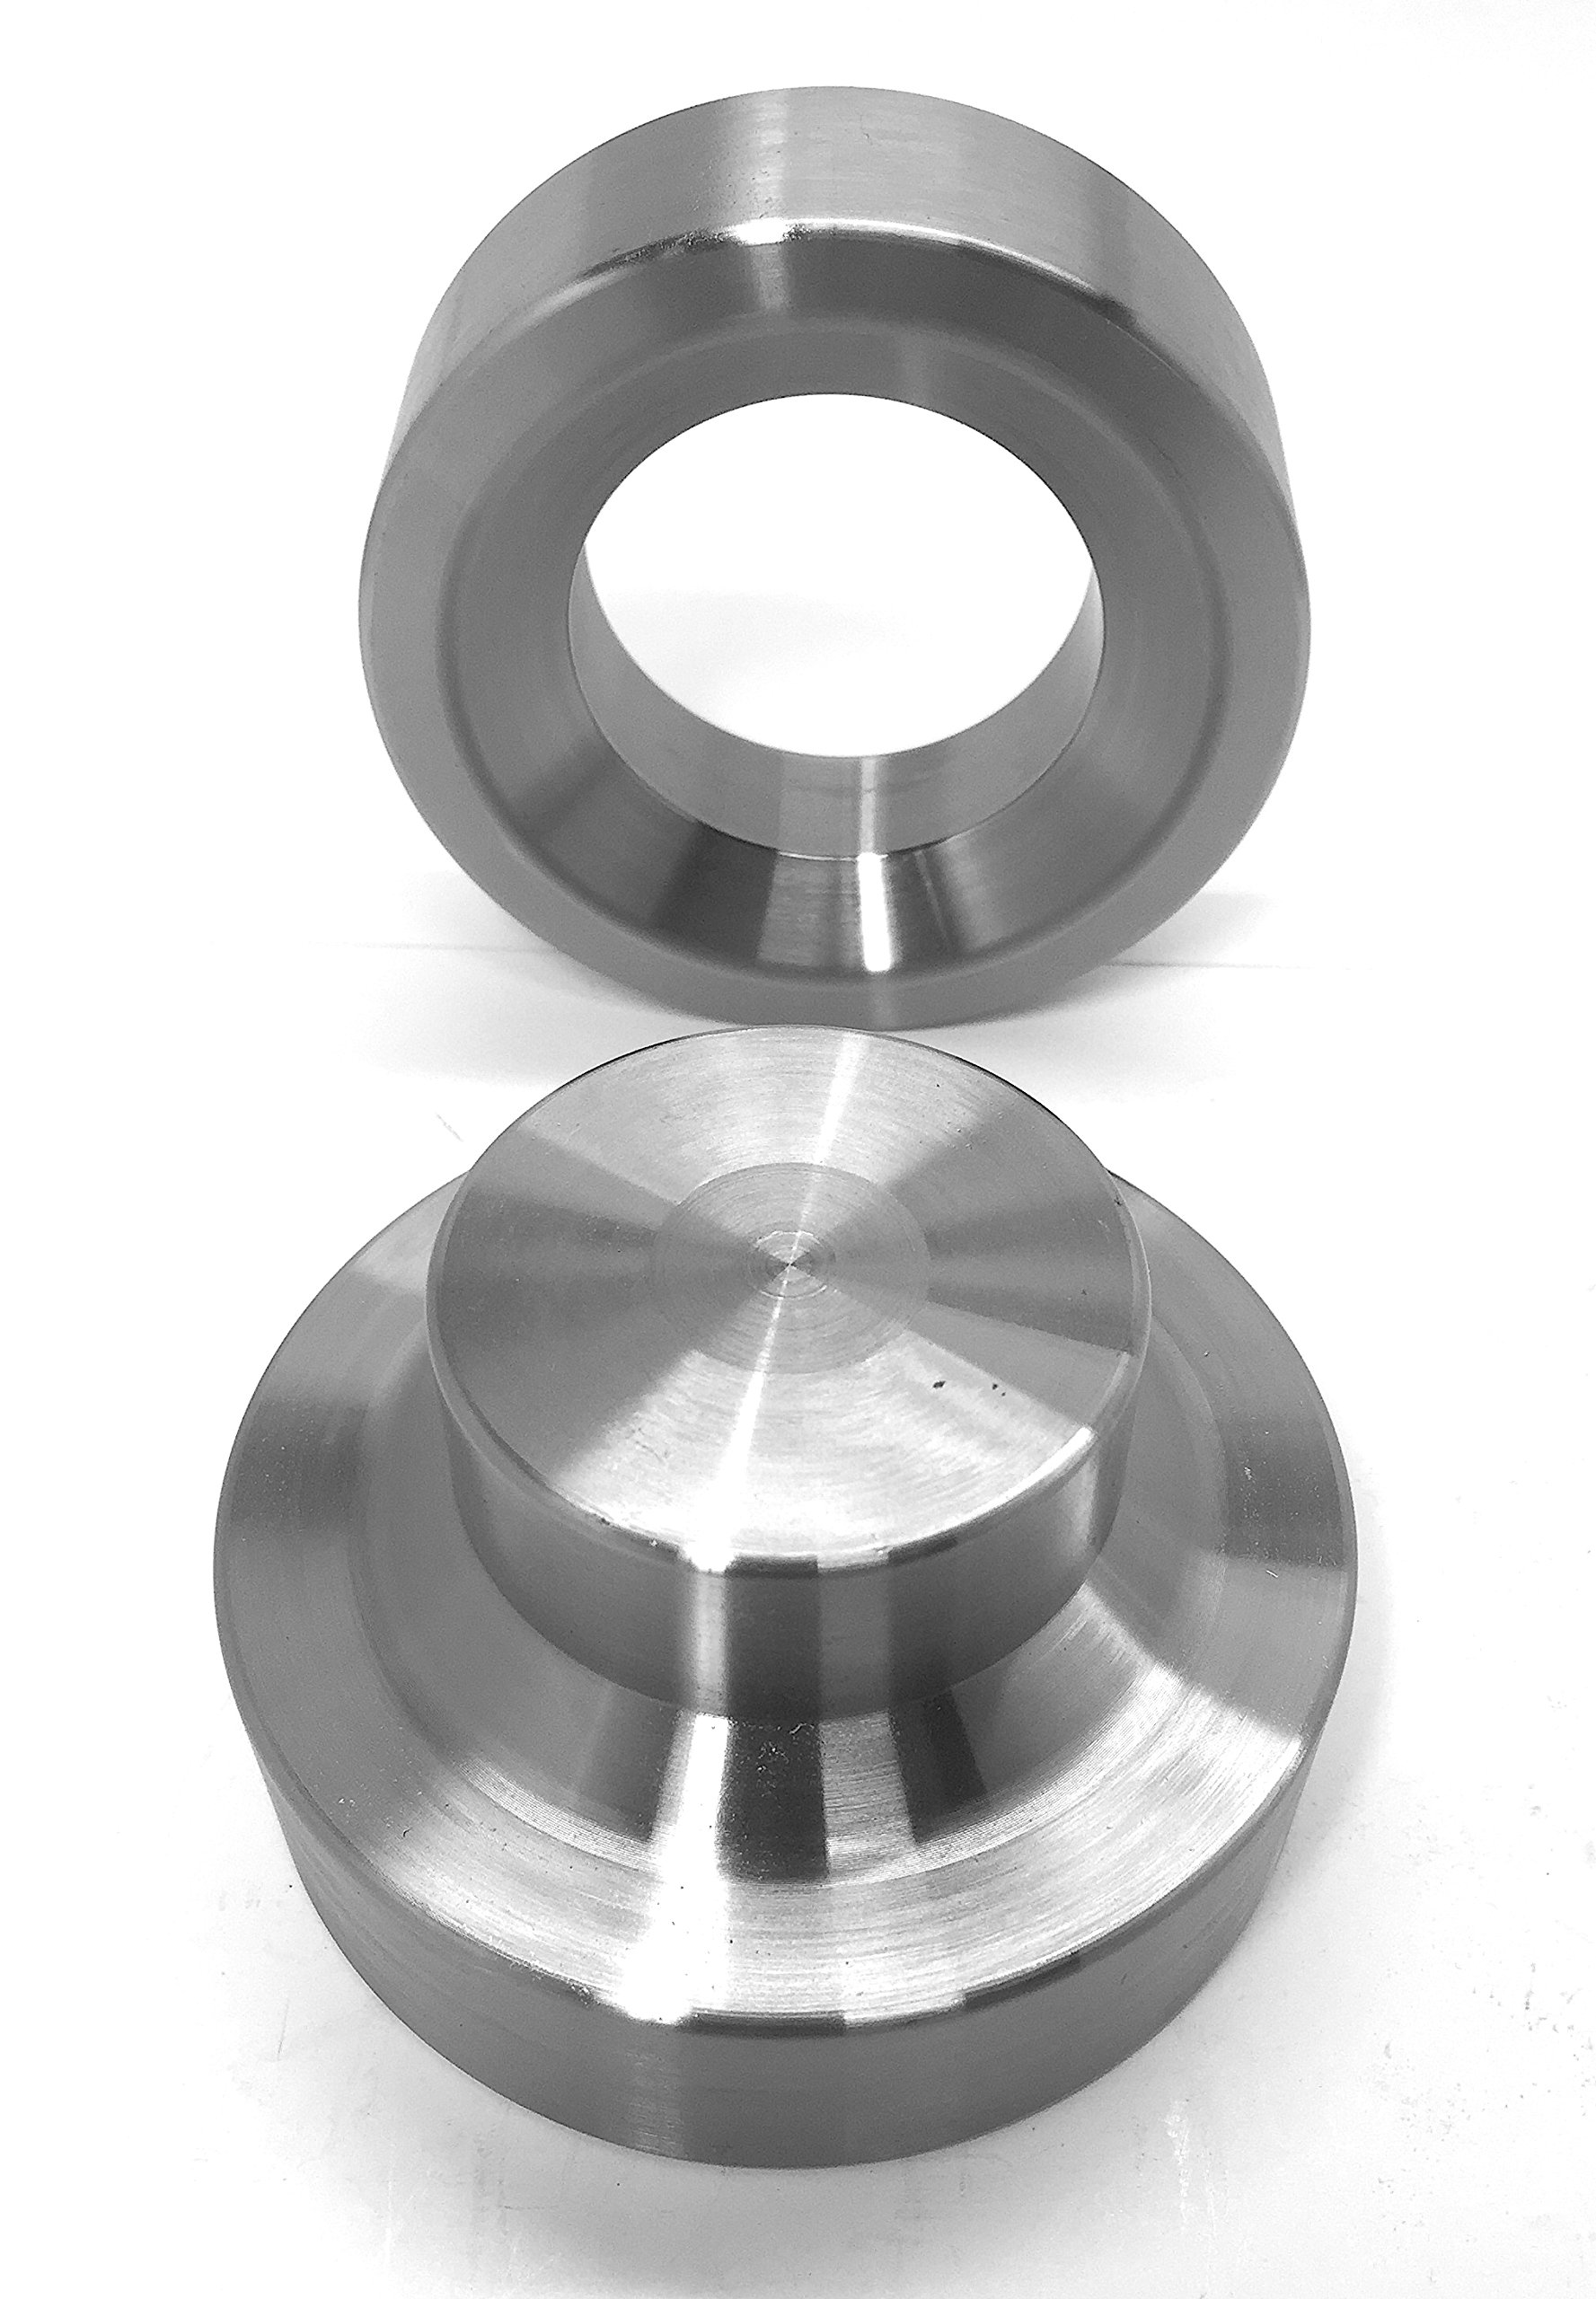 Dimple Dies for metal fabrication, multiple sizes to choose from (1-1/2'') by UTVDistribution